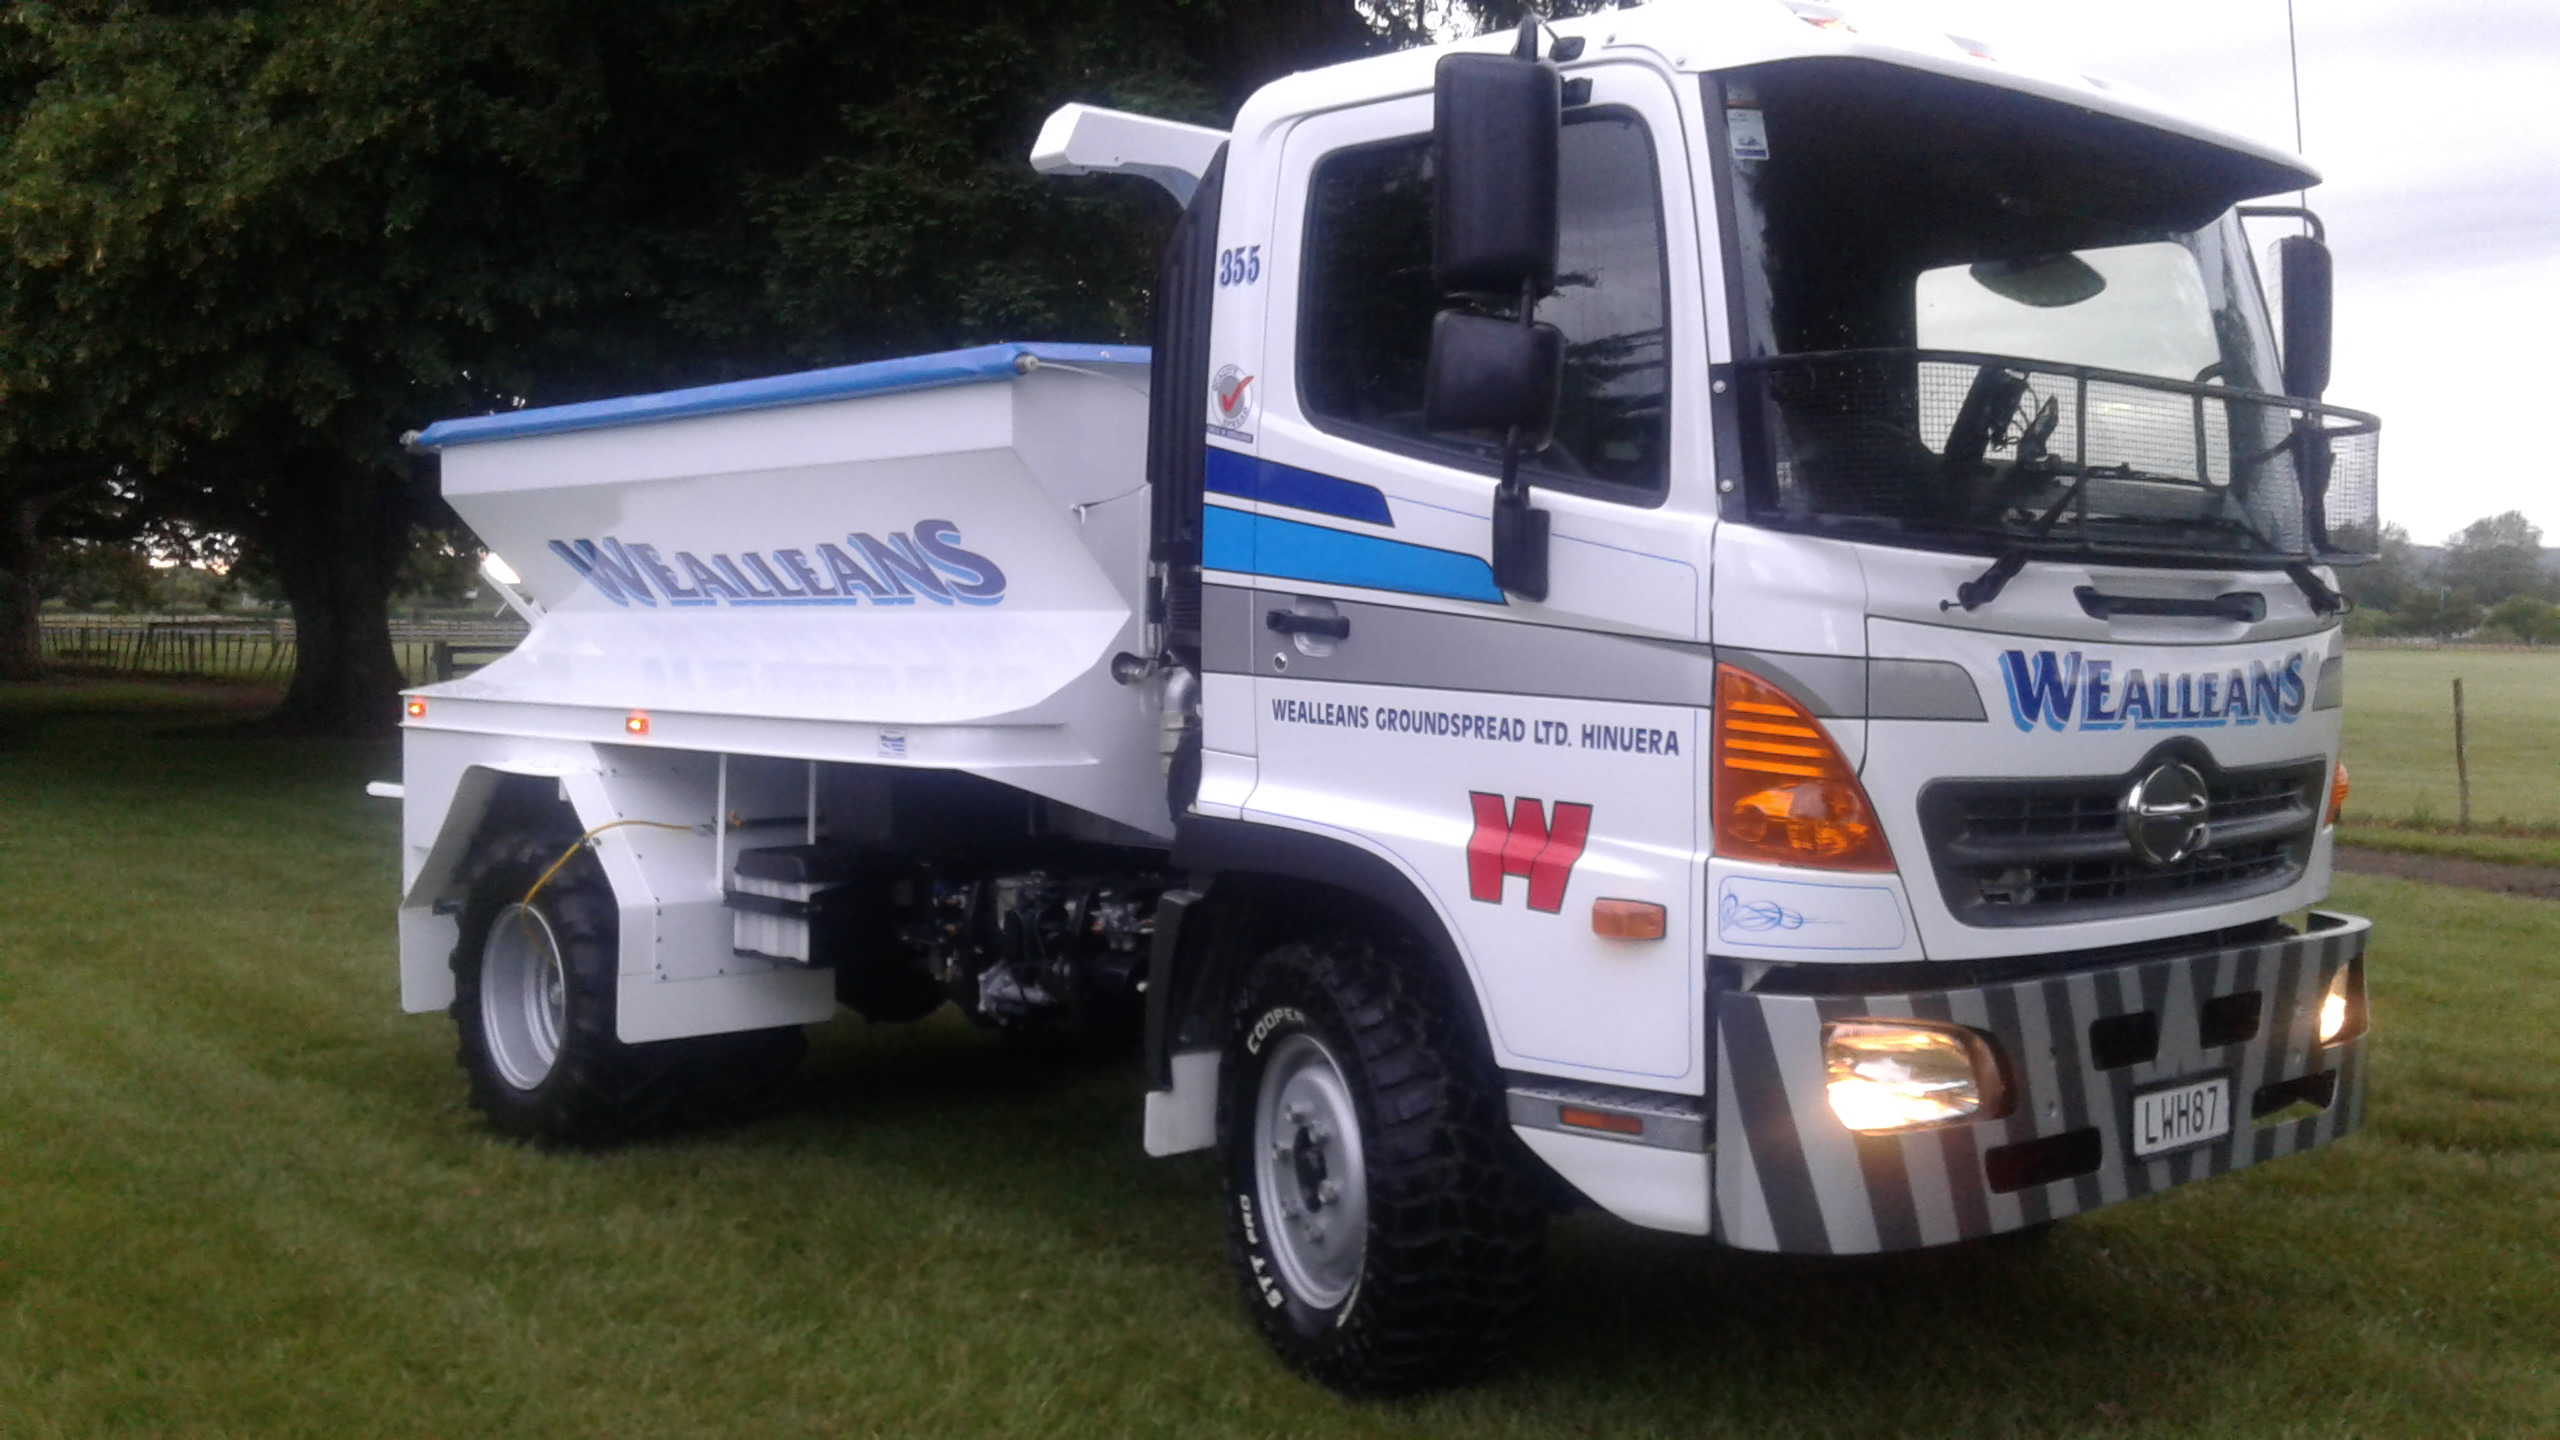 Wealleans Group - 500 Series Spreader with Central Tyre Inflation System